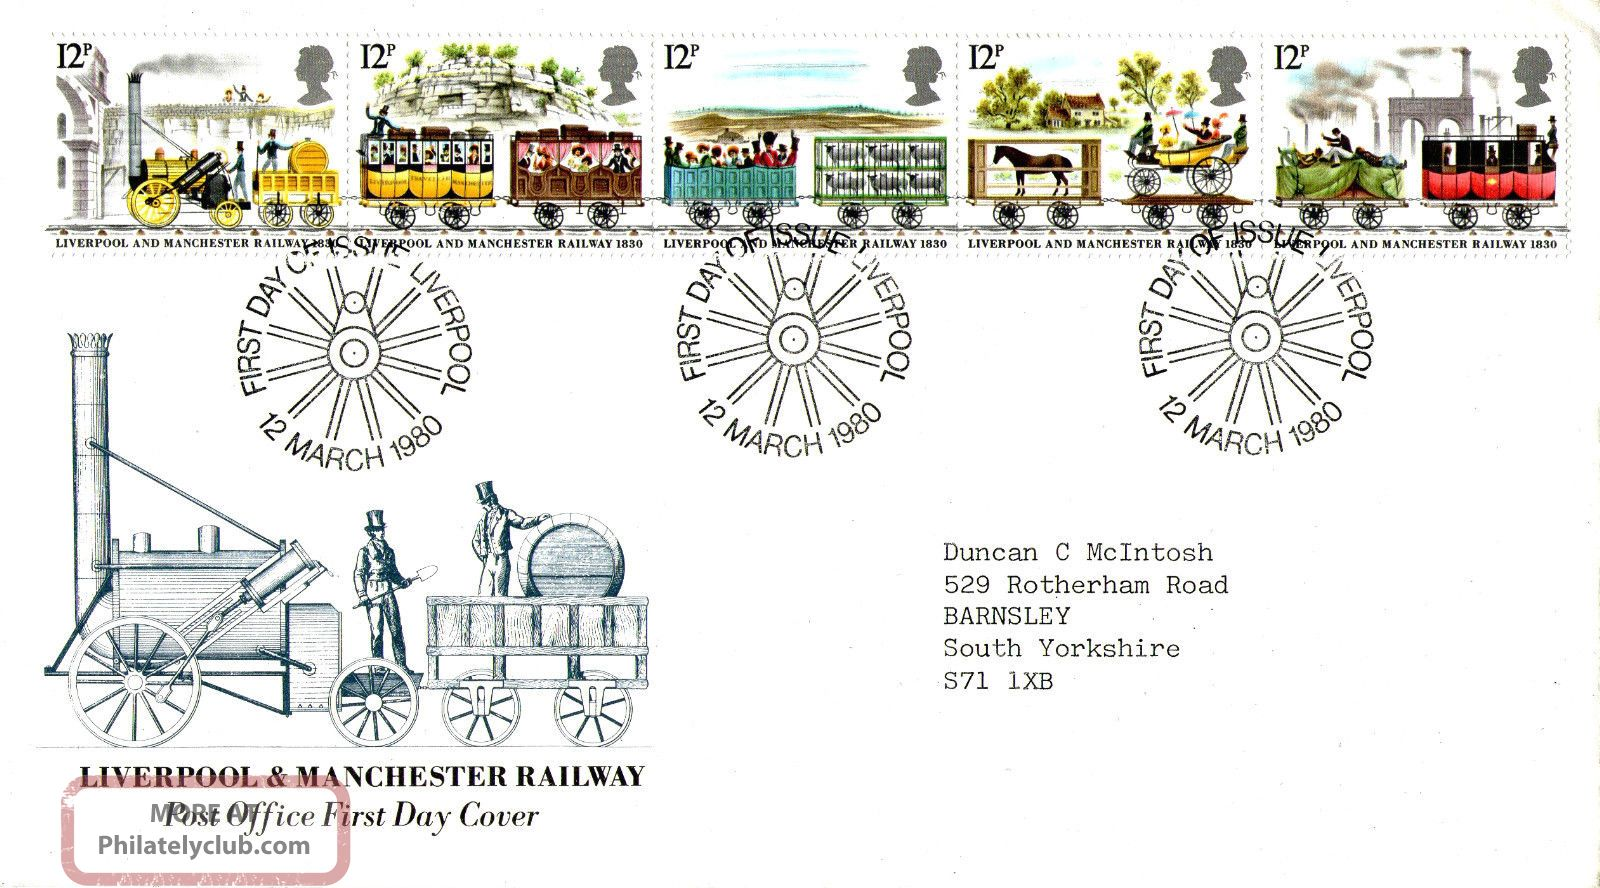 12 March 1980 Liverpool & Manchester Railway Po First Day Cover Liverpool Shs Transportation photo